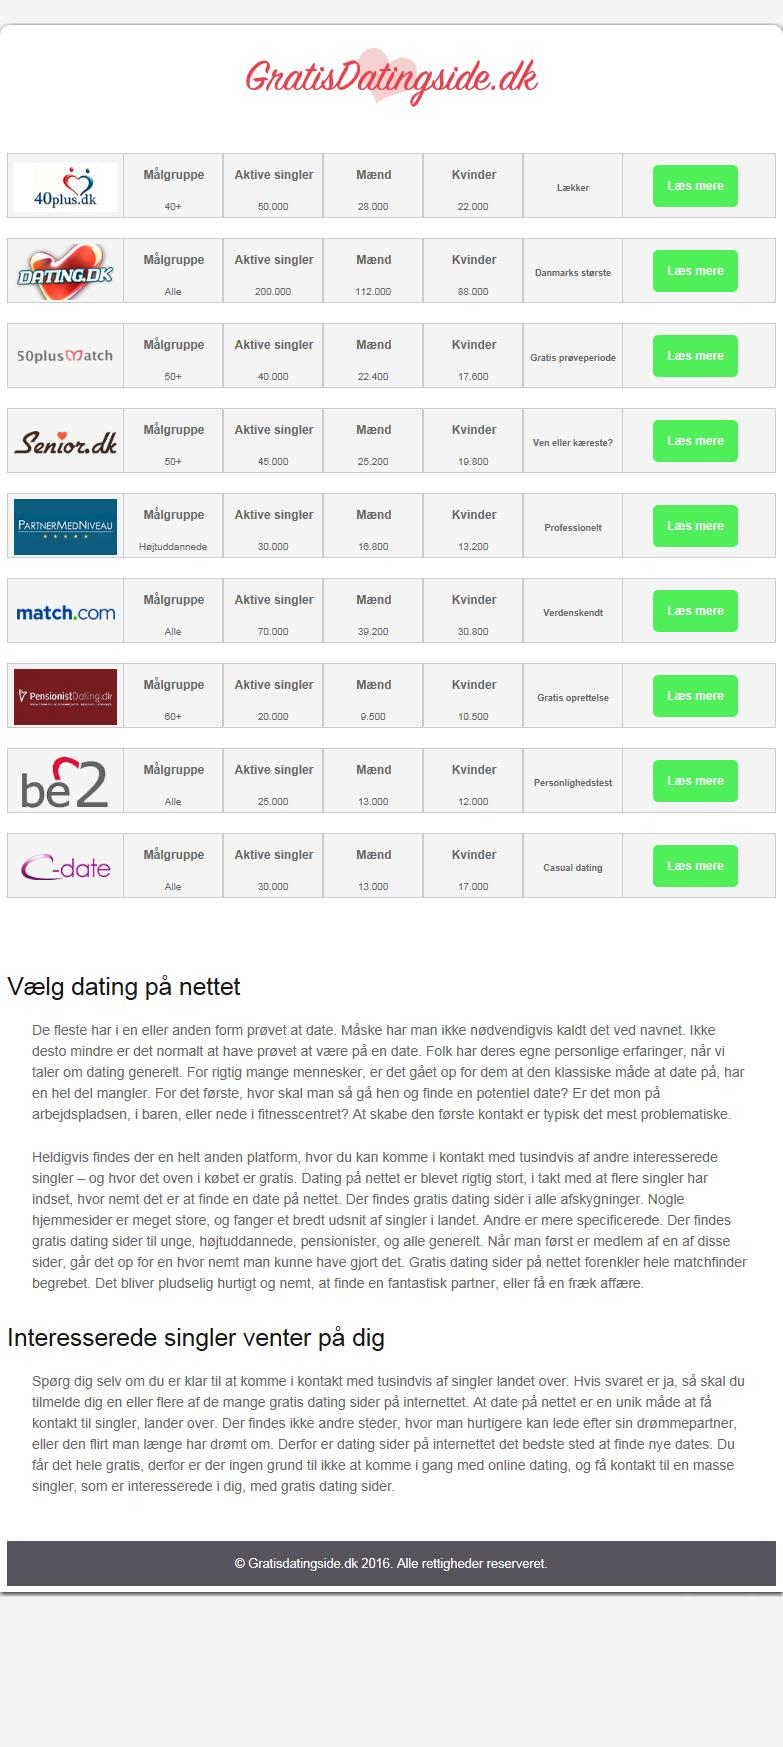 Datingside hjertebanken